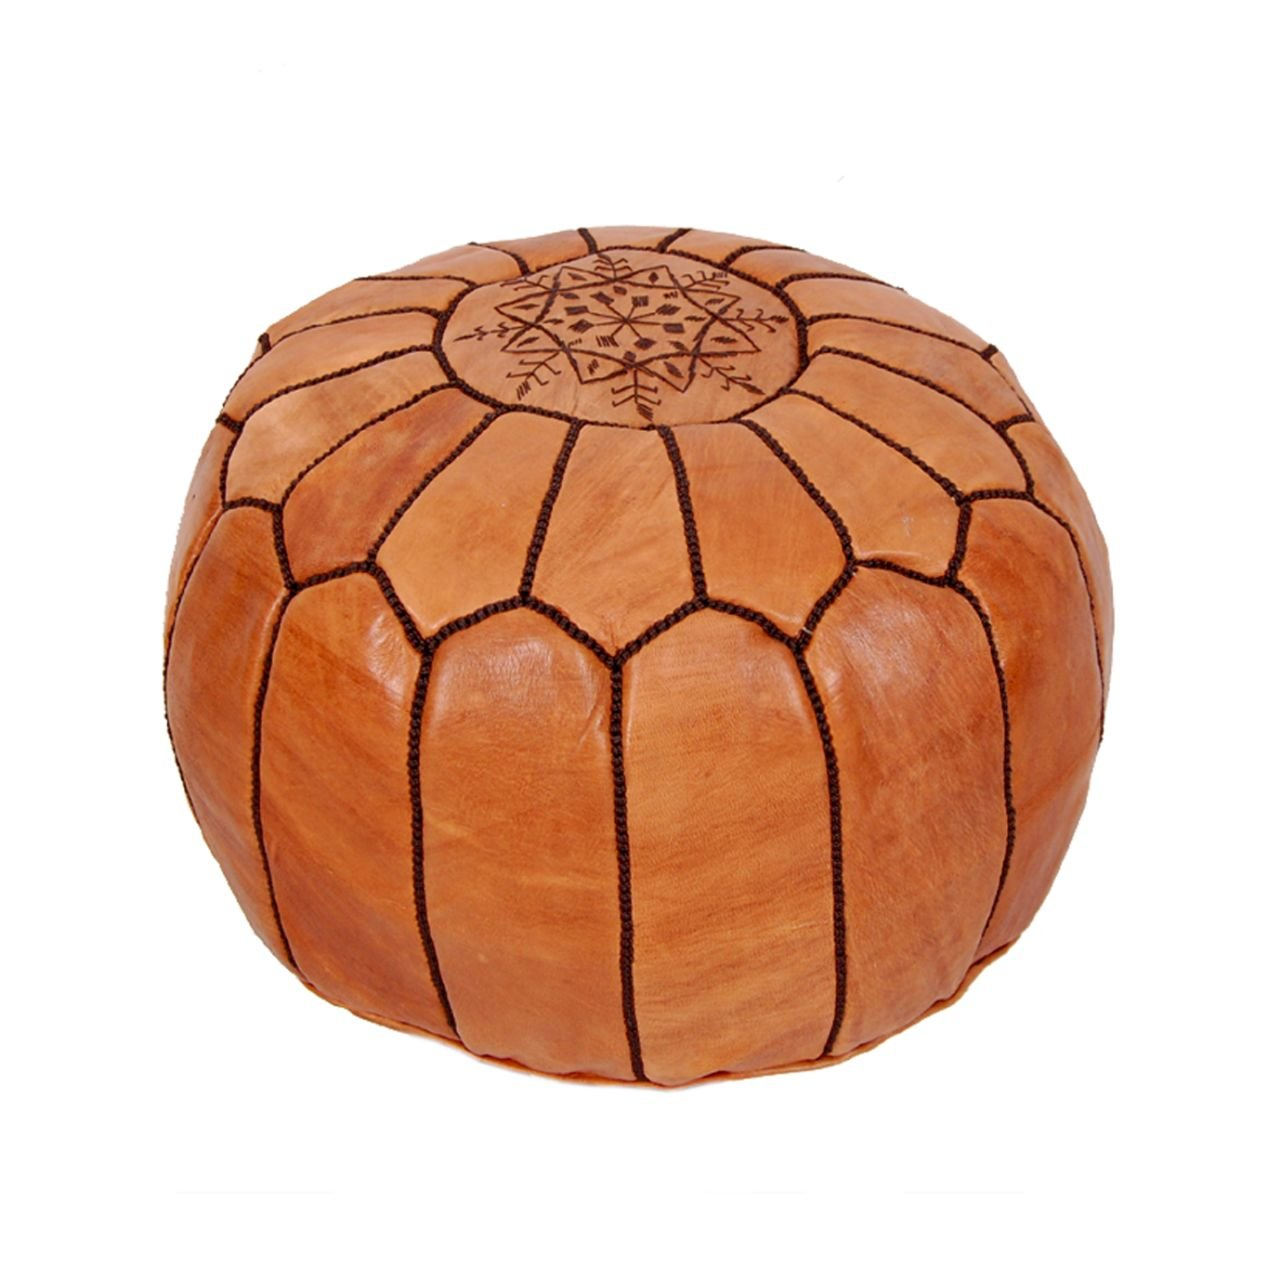 Moroccan Pouf Ottoman Footstool (Leather) Genuine Hand-Stitched Seating | Unstuffed | Living Room, Bedroom, Sitting Area | Brown | Exclusive Designs